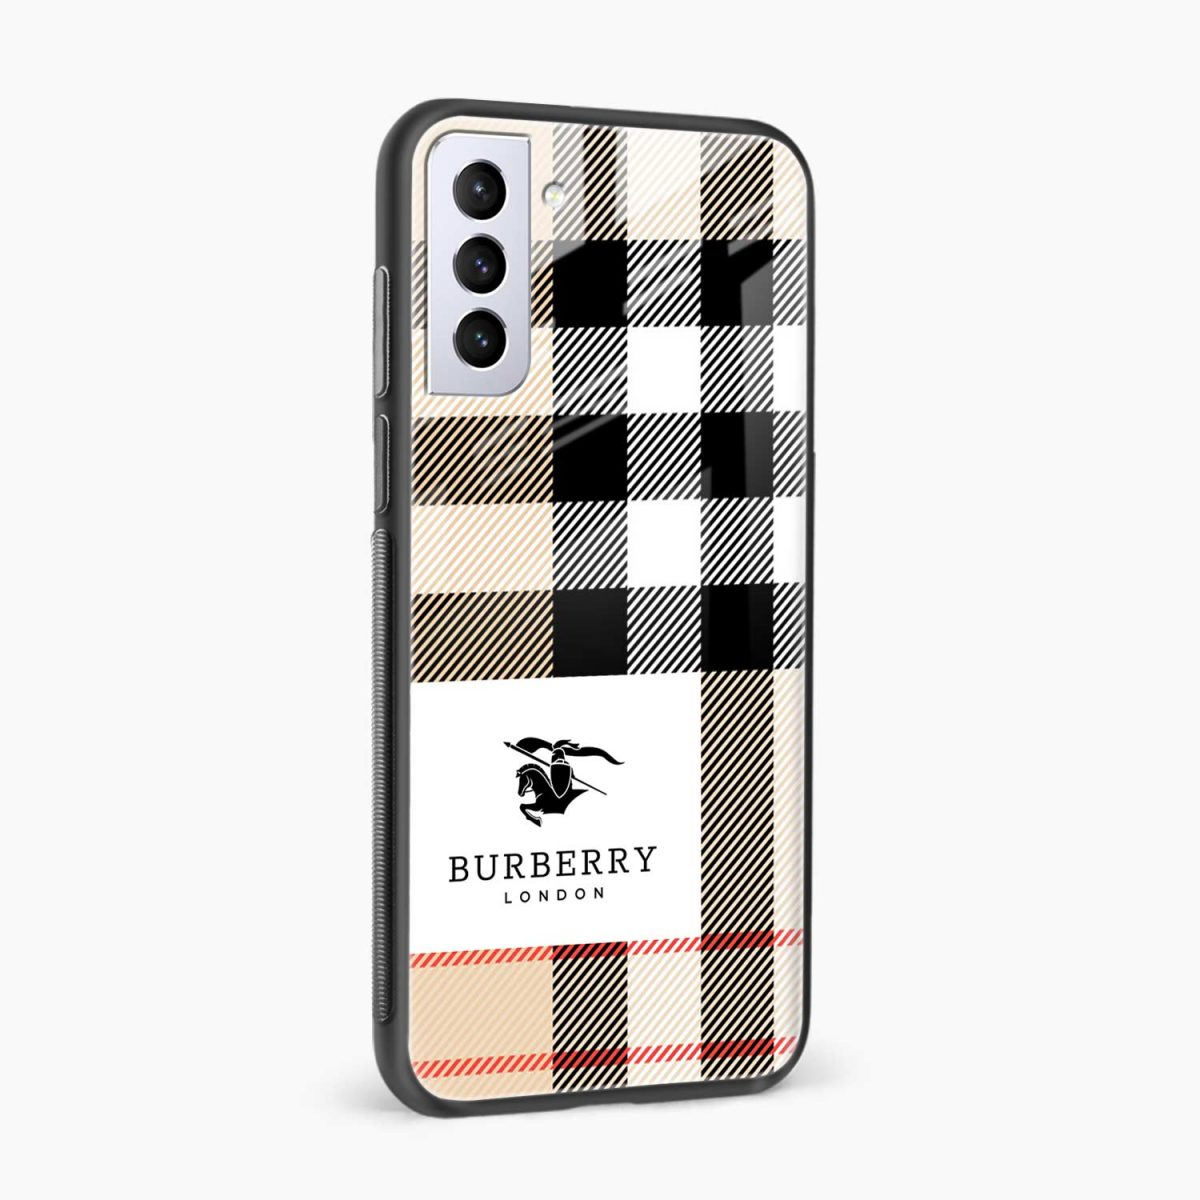 burberry cross lines side view samsung s21 plug back cover